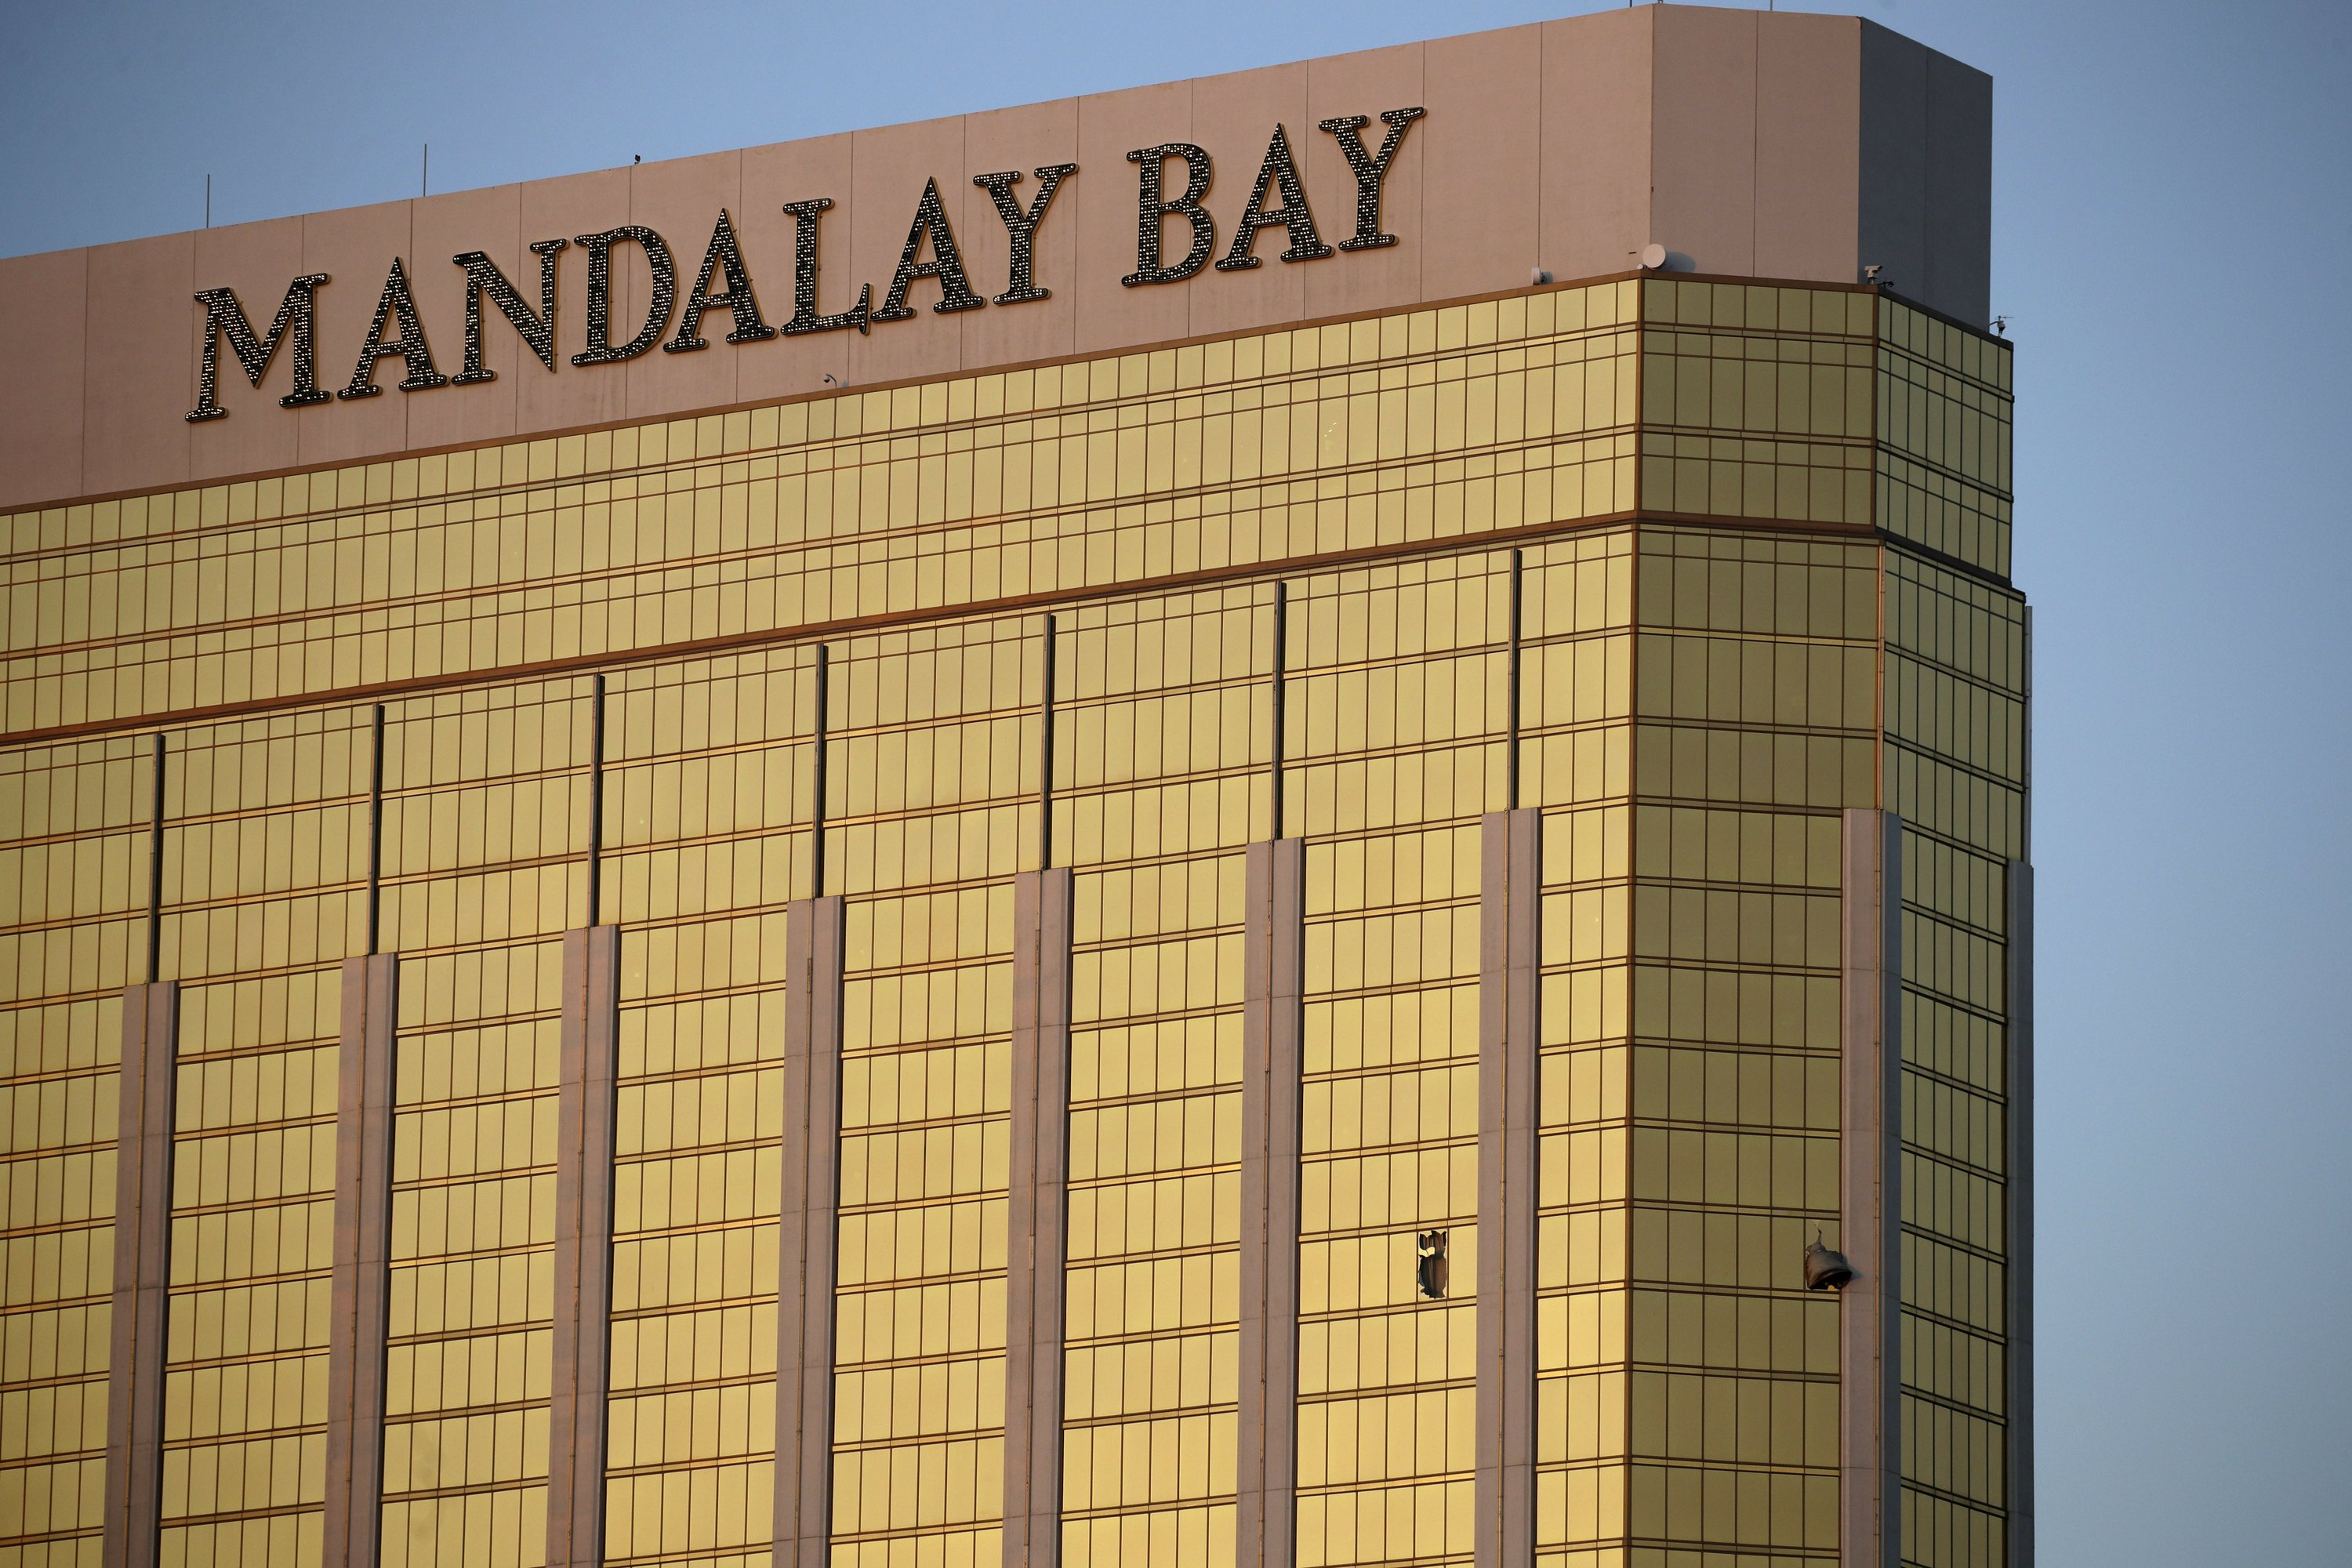 Officials struggling to clear up key facts on Vegas massacre